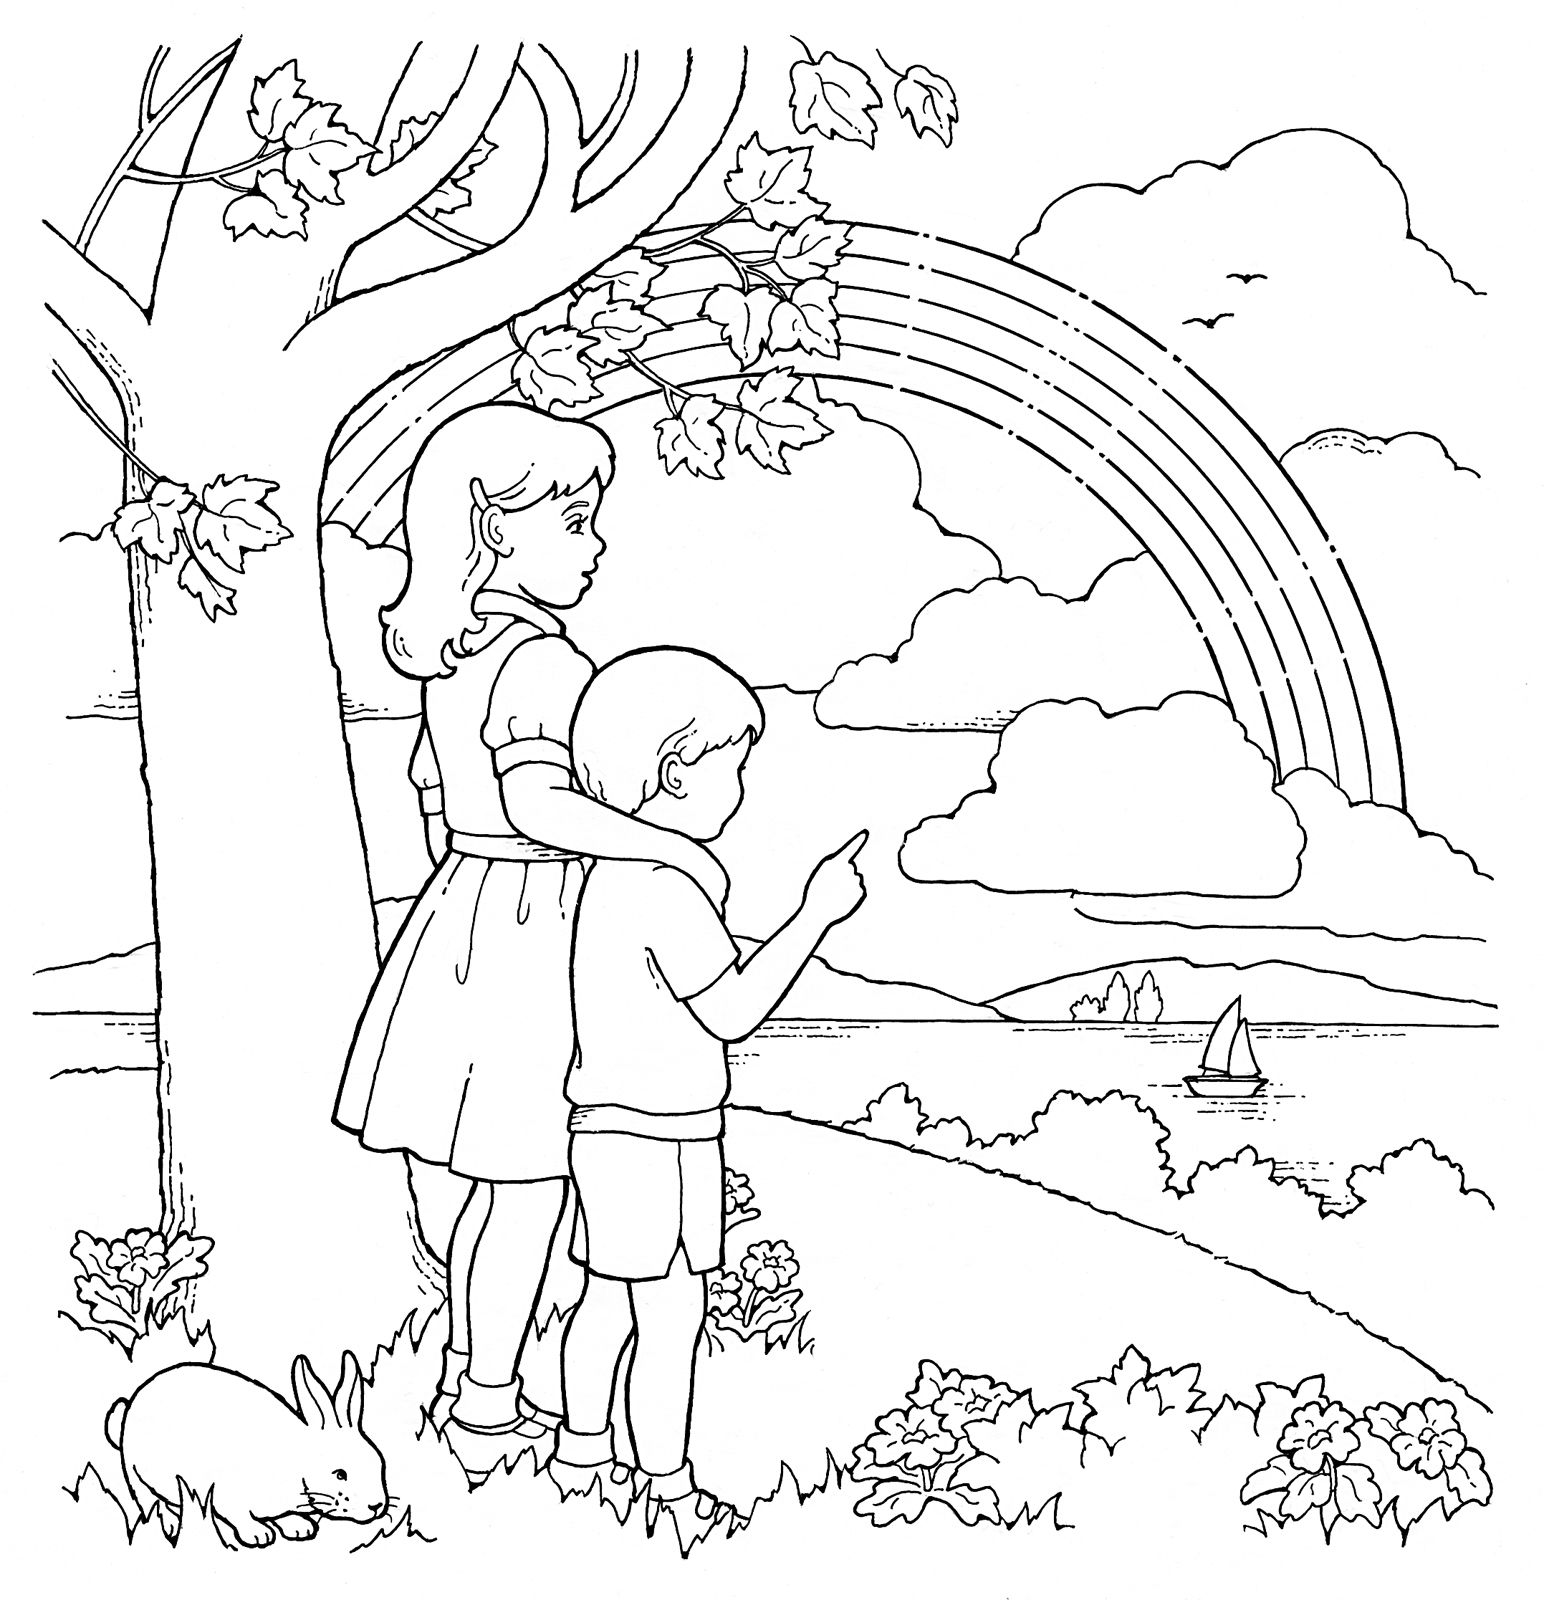 Primary Coloring Page. Children and Rainbow. #ldsprimary | LDS ...